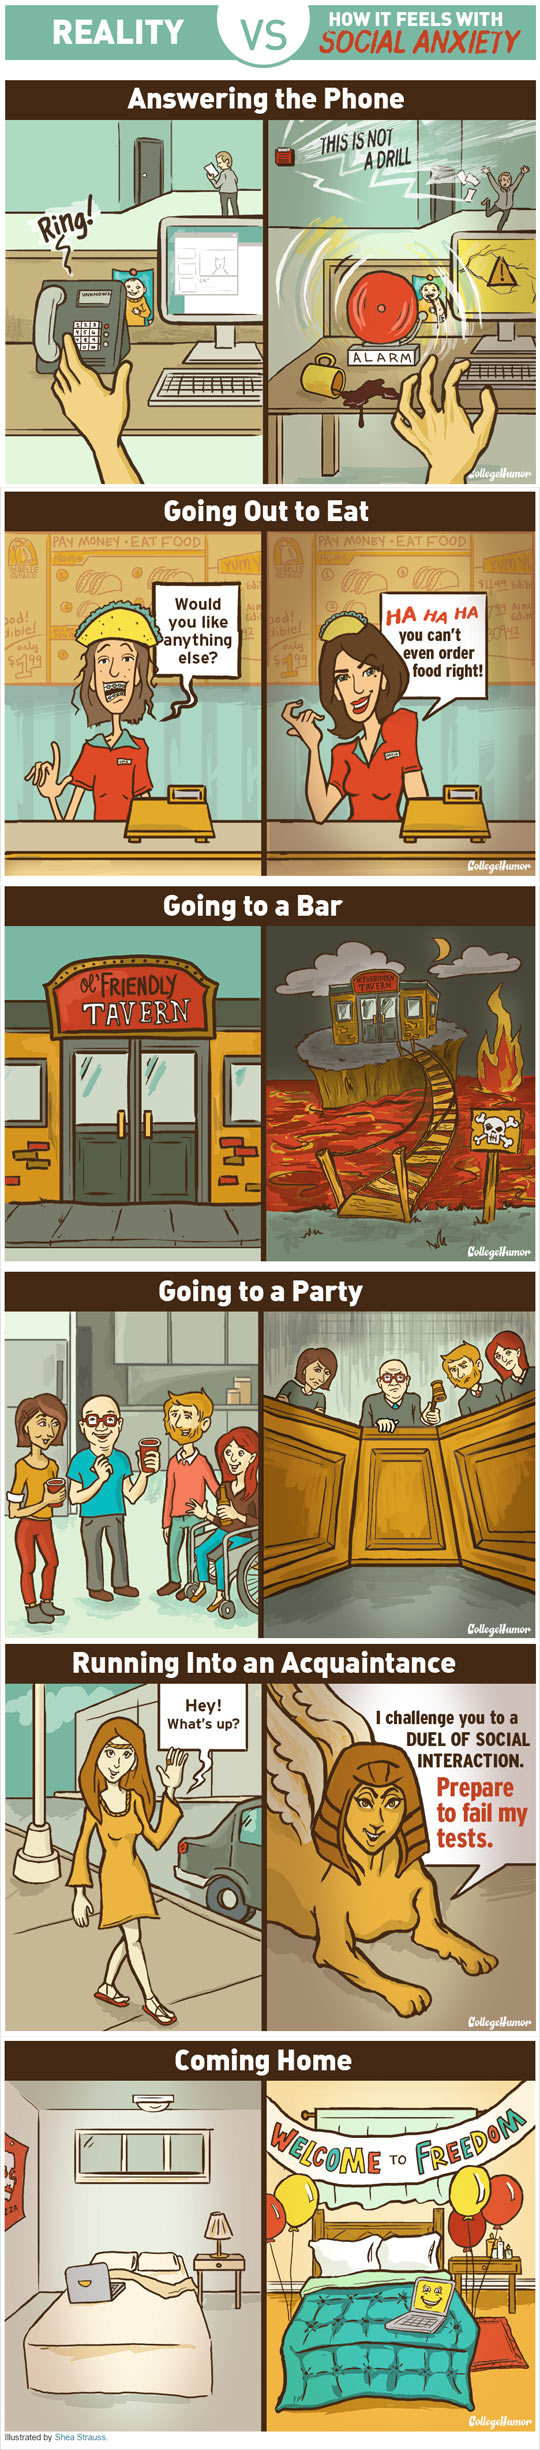 How It Feels With Social Anxiety